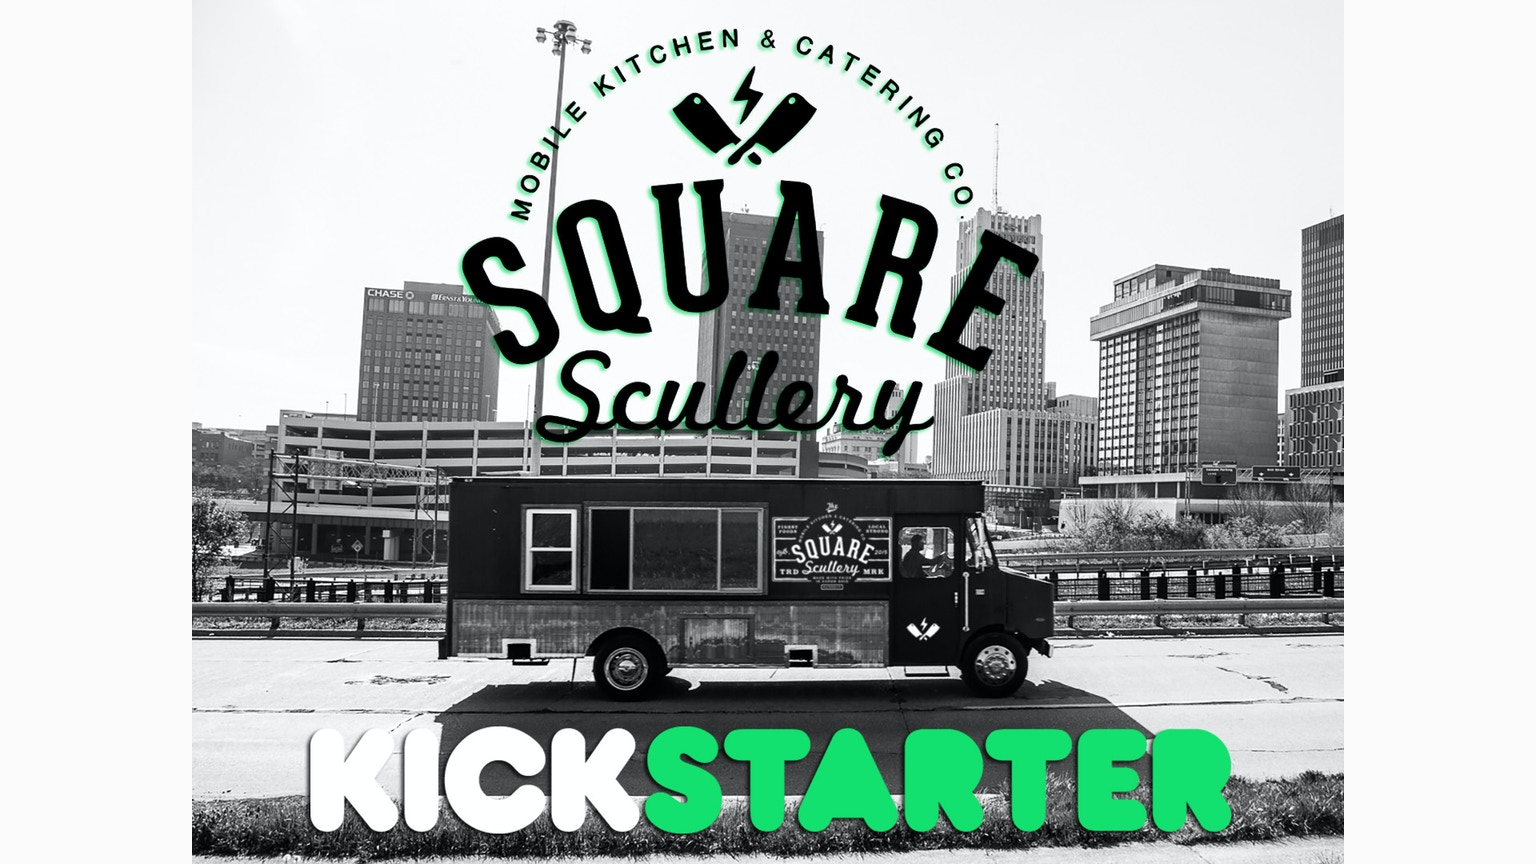 Square Scullery Food Truck